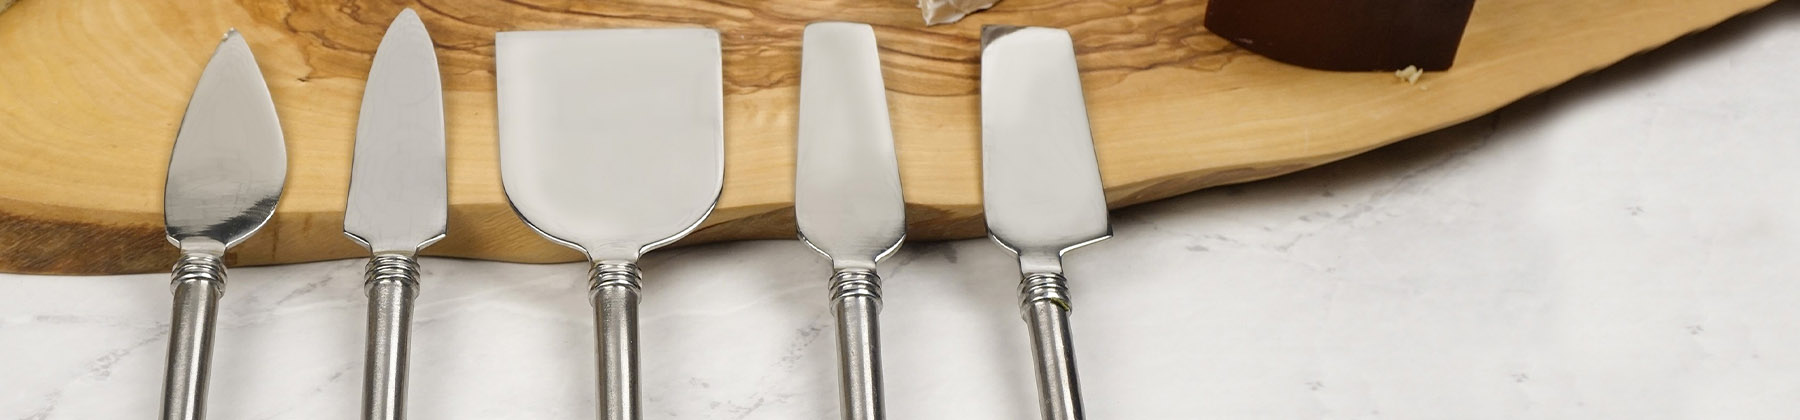 Photo of specialty flatware.